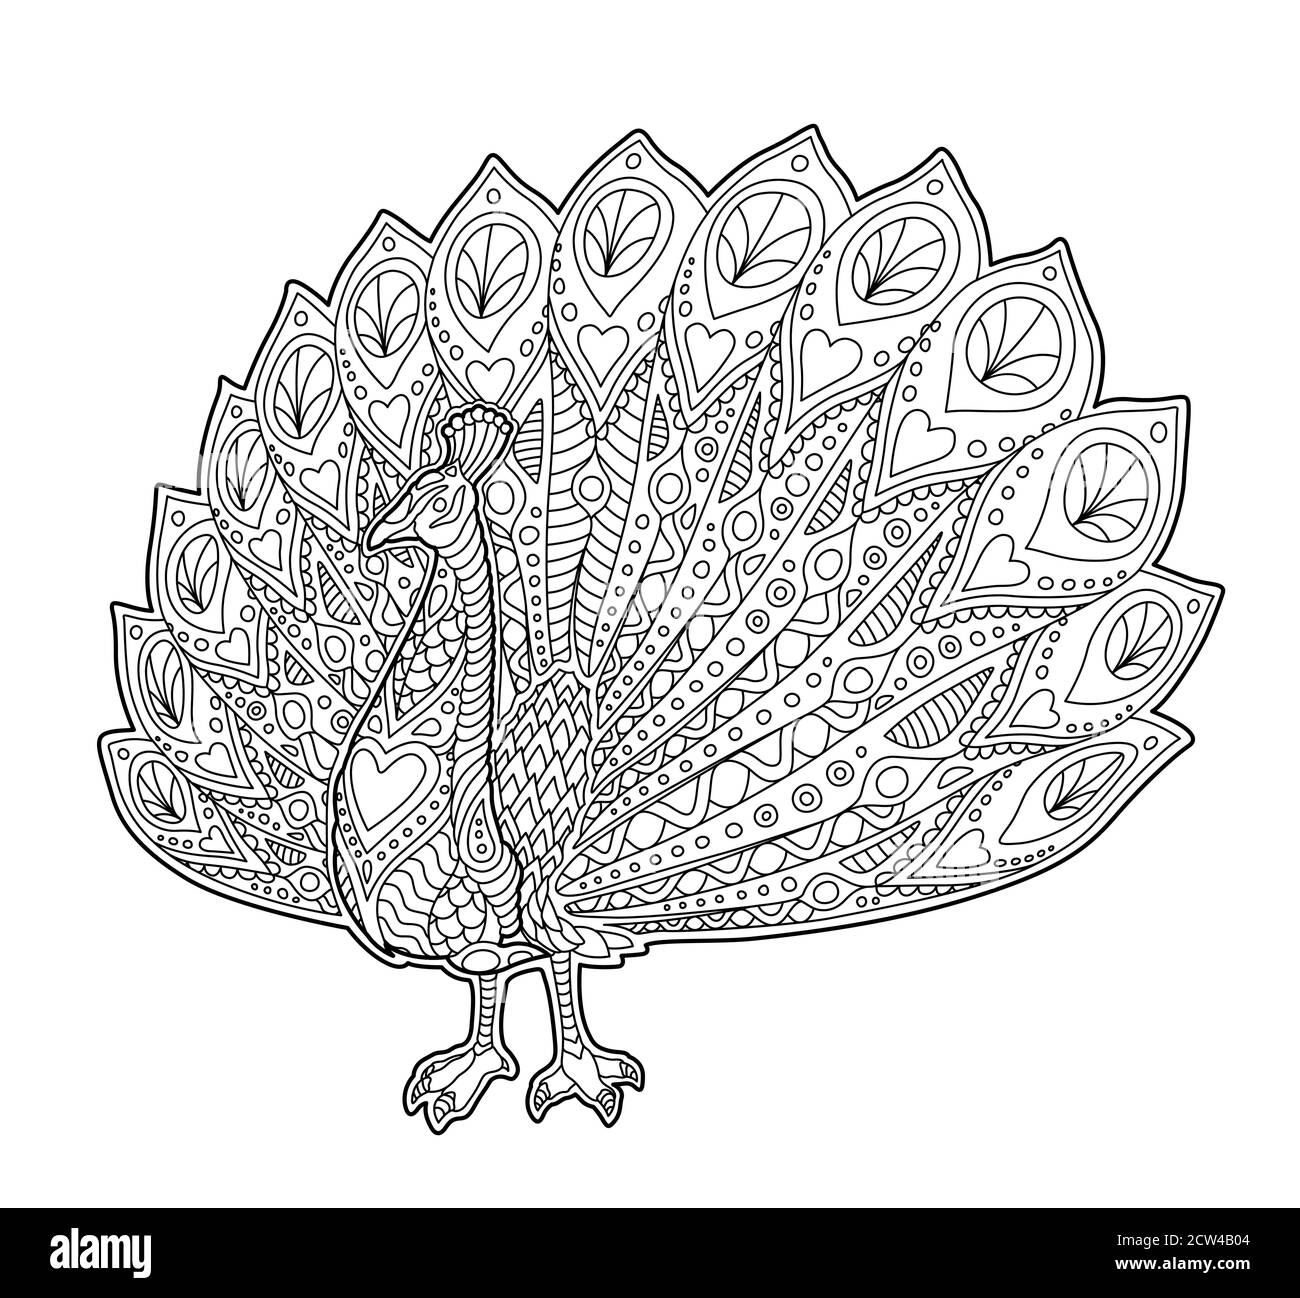 cartoon peacock high resolution stock photography and images alamy https www alamy com beautiful adult coloring book page with funny cartoon peacock on white background image376880564 html